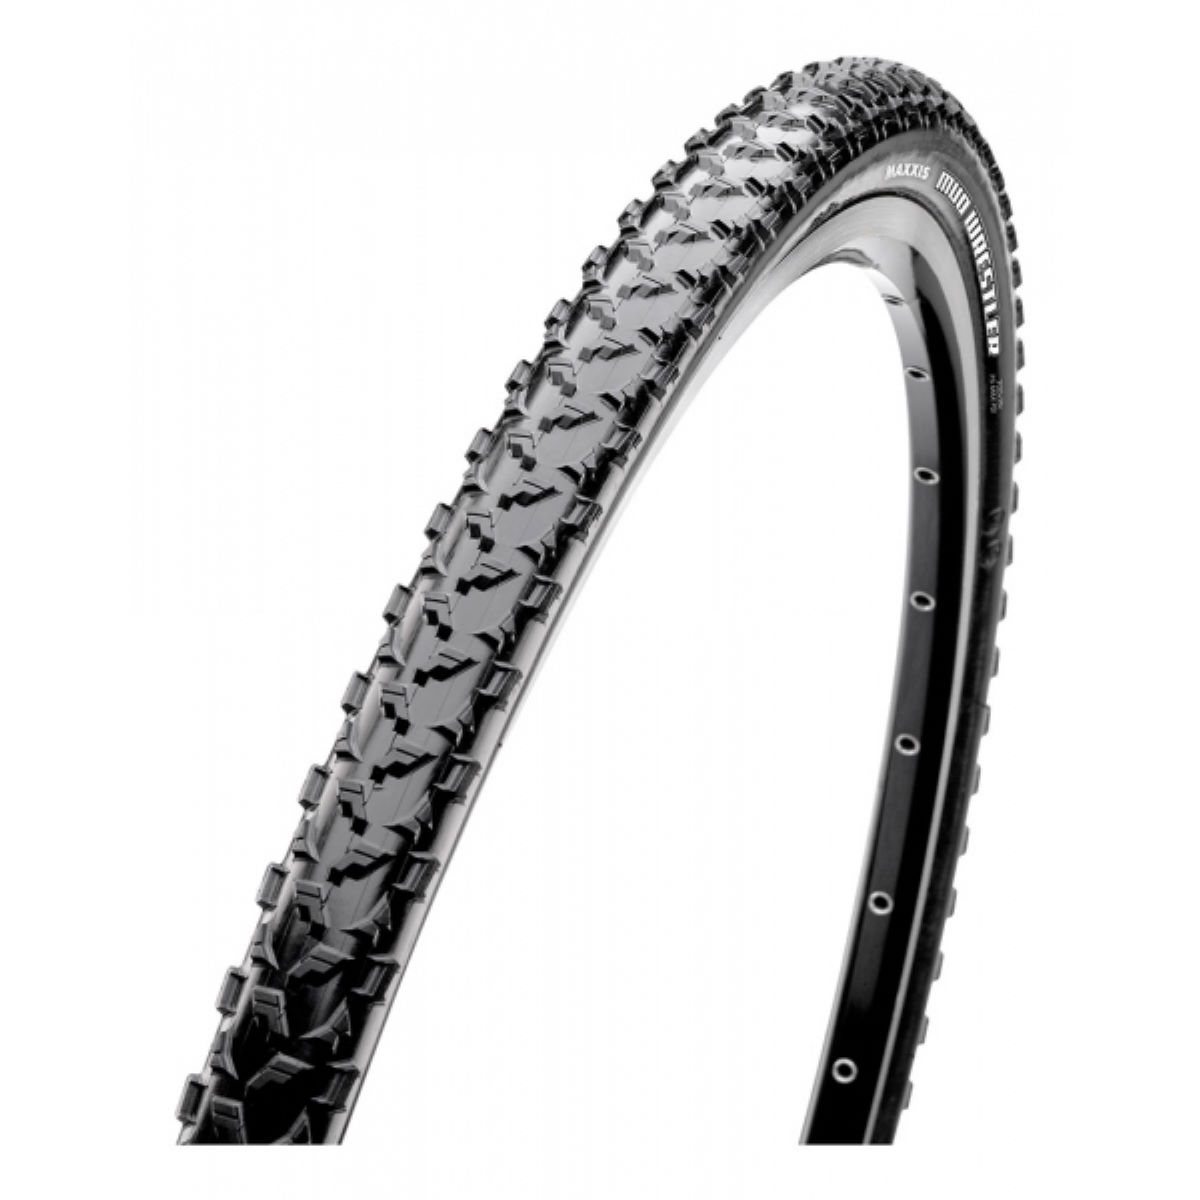 Pneu Maxxis Mud Wrestler EXO TR (souple) - 33mm 700c Noir